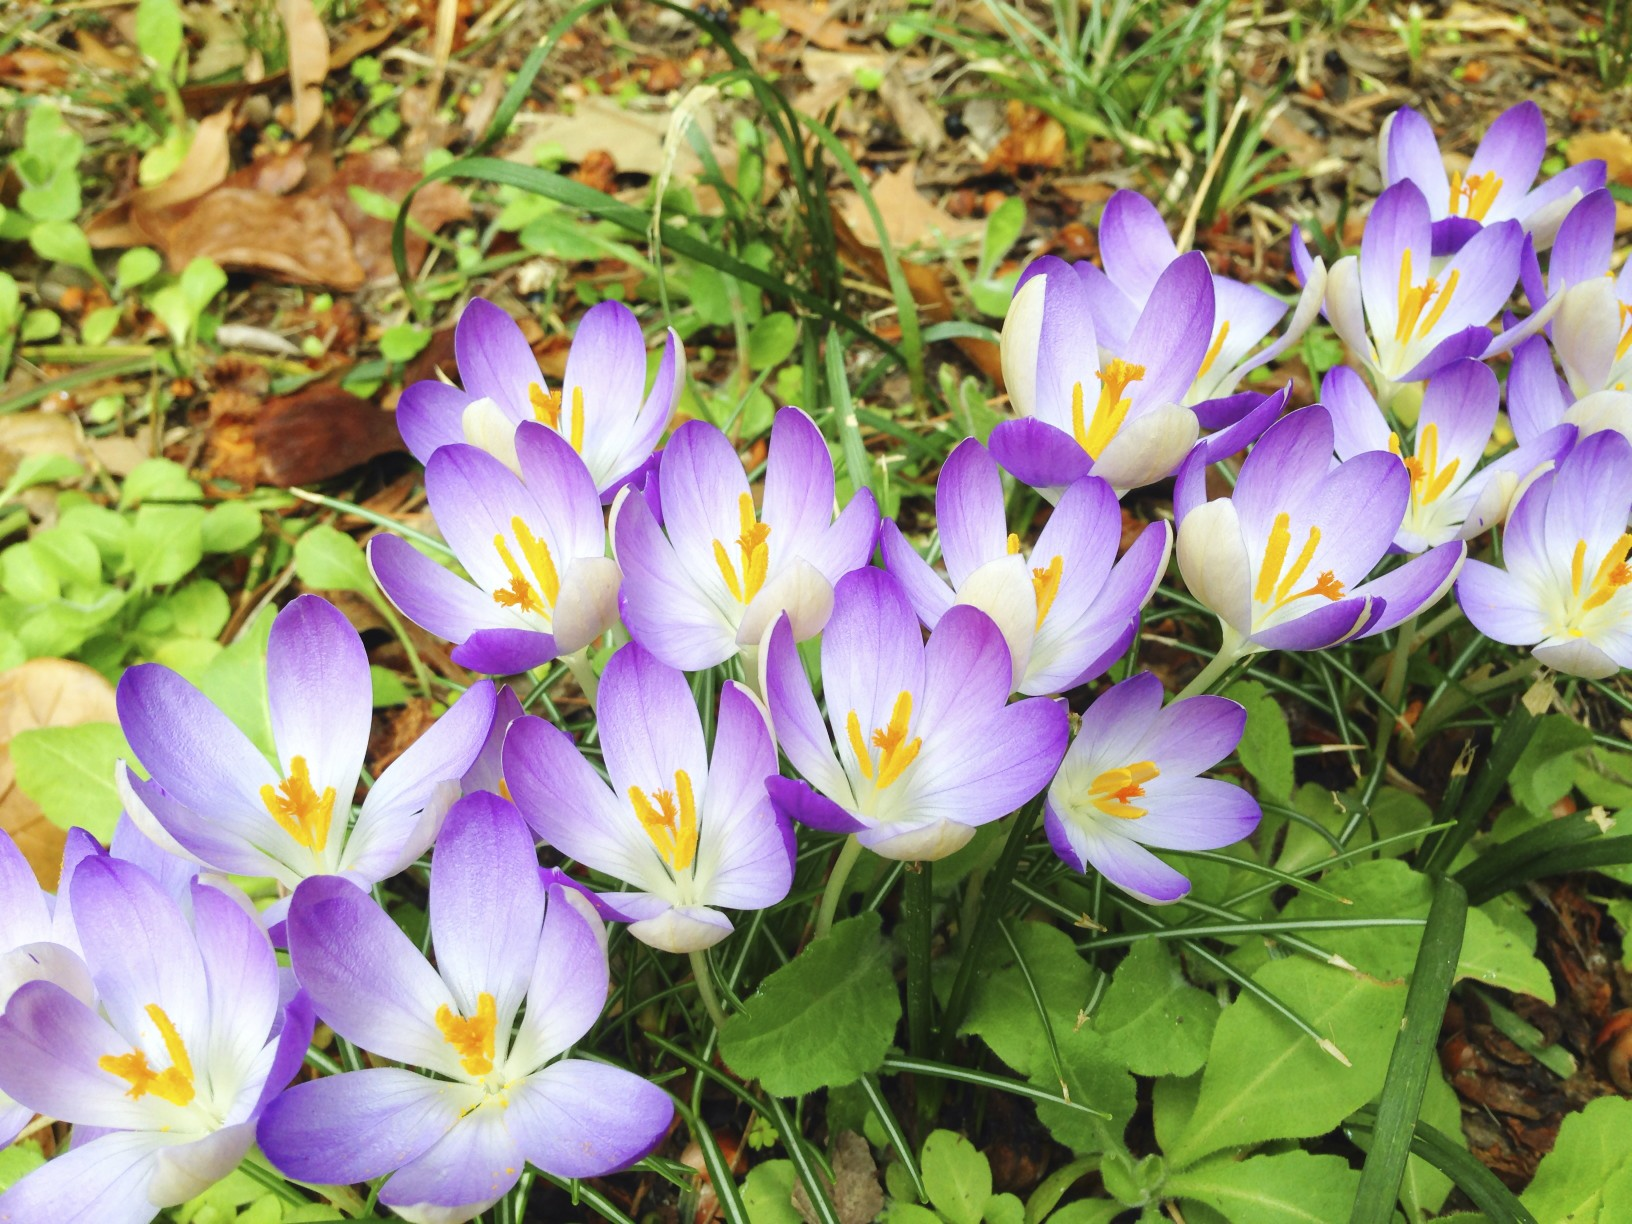 Crocus blooming in the Eudora Welty garden